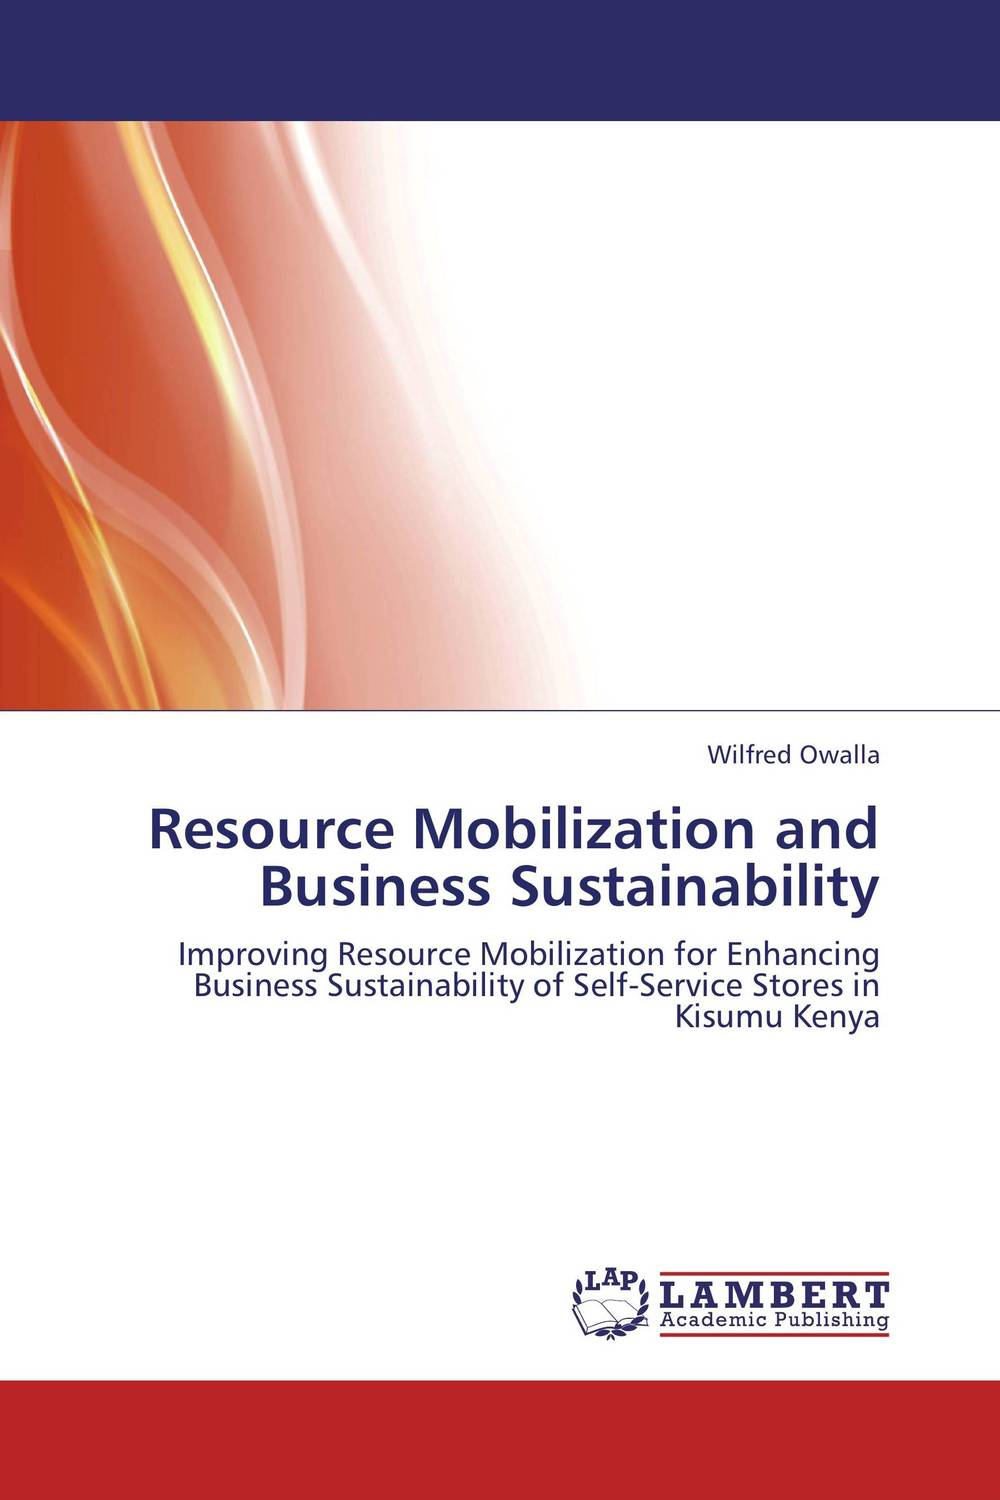 Resource Mobilization and Business Sustainability peter block stewardship choosing service over self interest